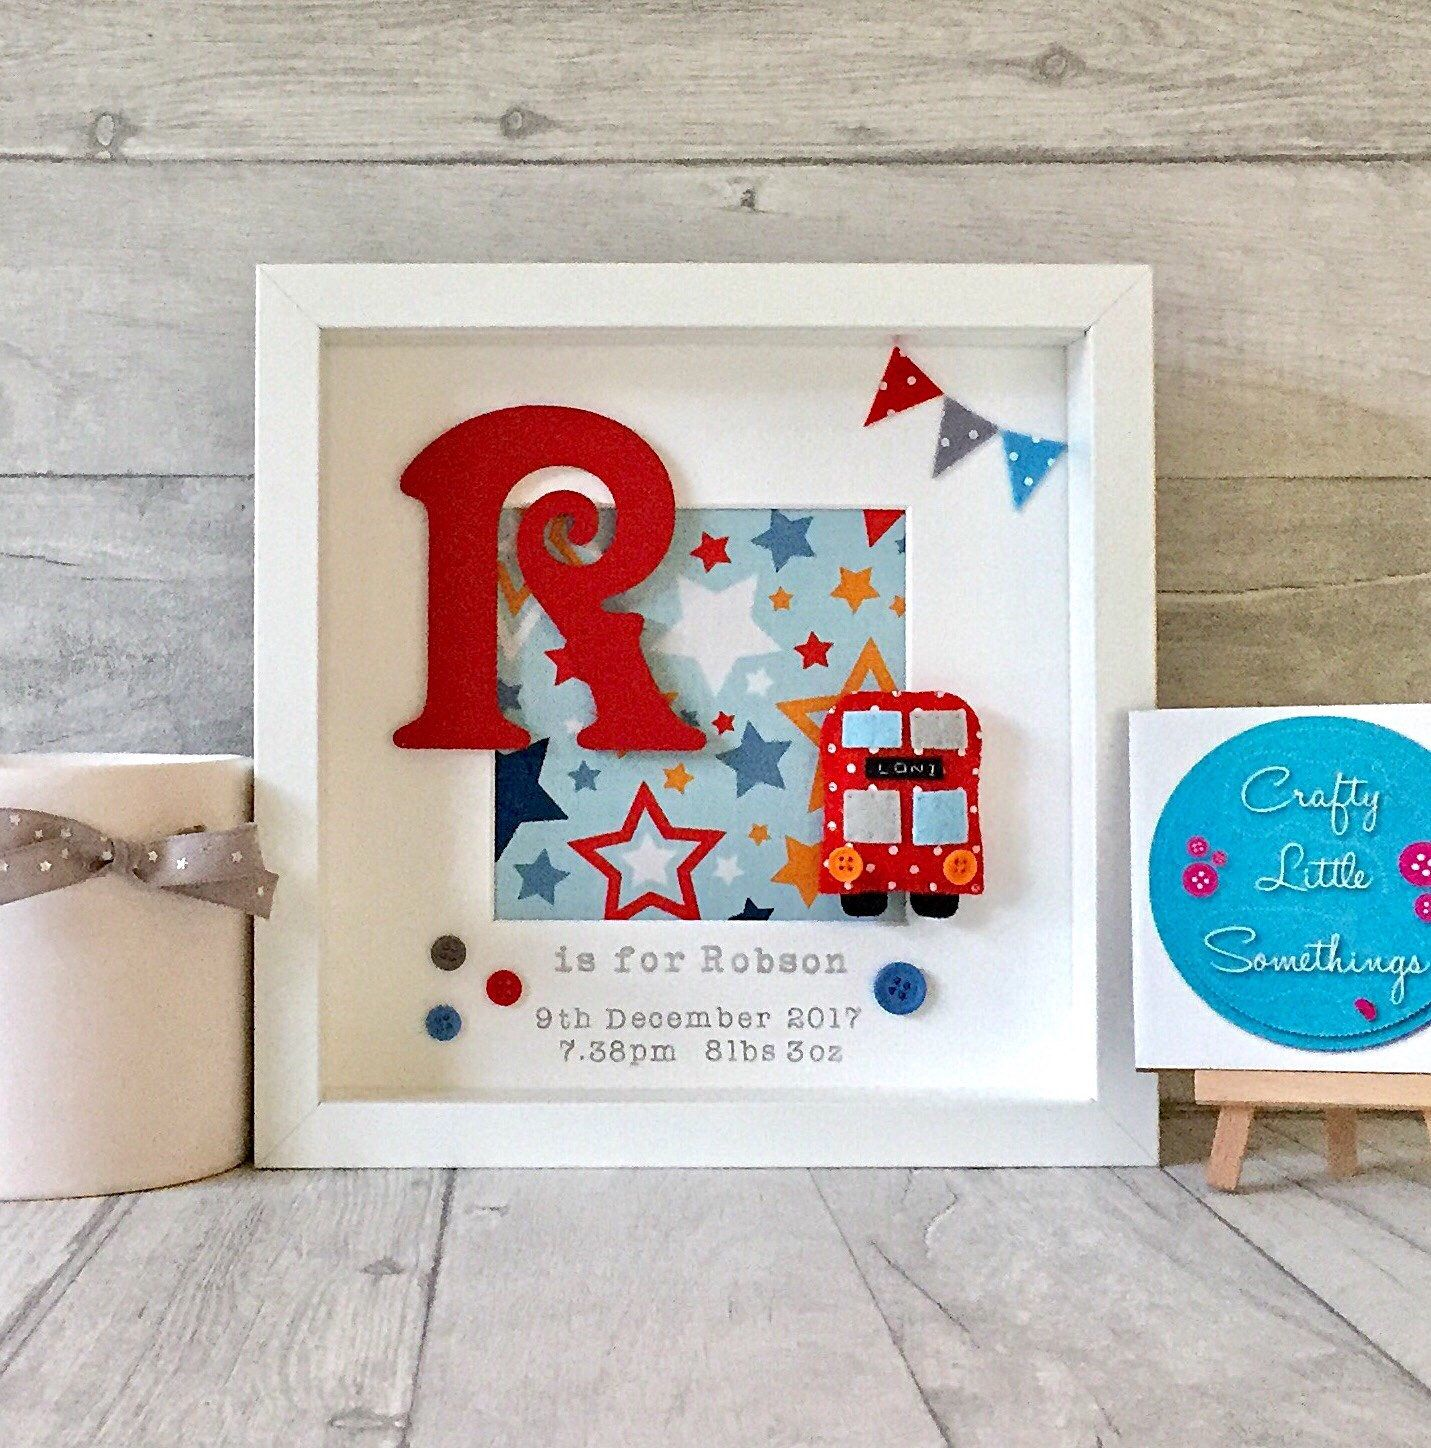 Personalised london bus box frame gift new baby gift christening personalised london bus box frame gift new baby gift christening gift 1st birthday gift london decor nursery decor baby keepsake negle Gallery